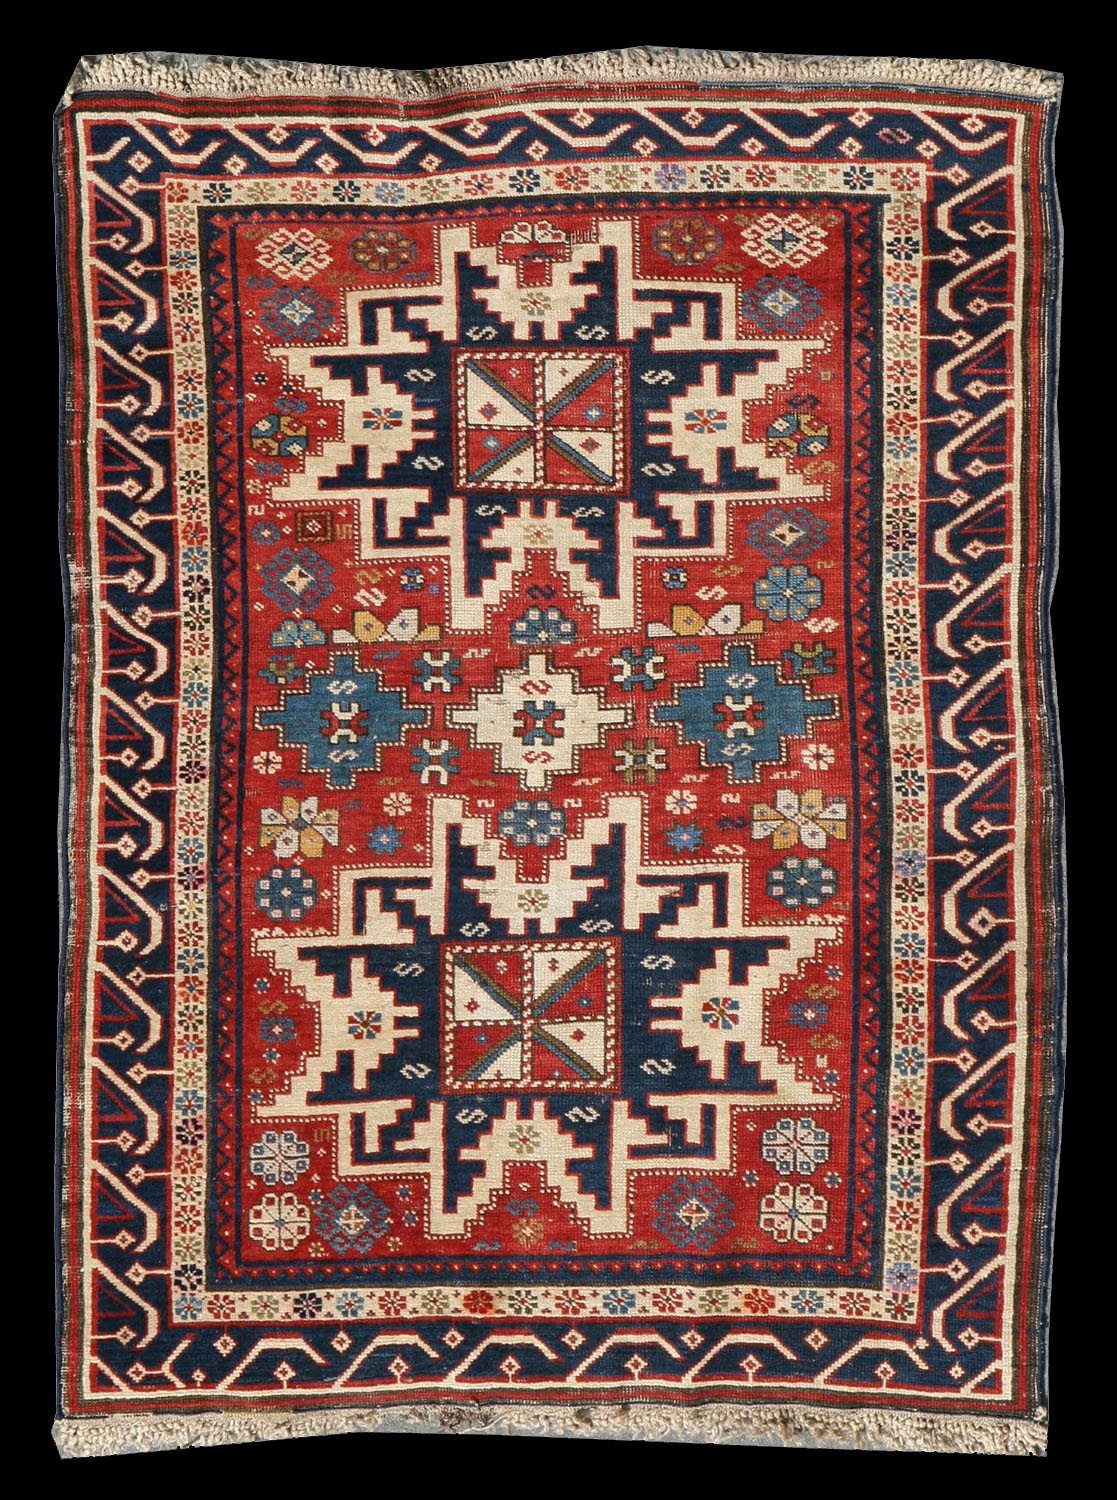 Antique Kuba Carpet Late 19th Century Early 20th